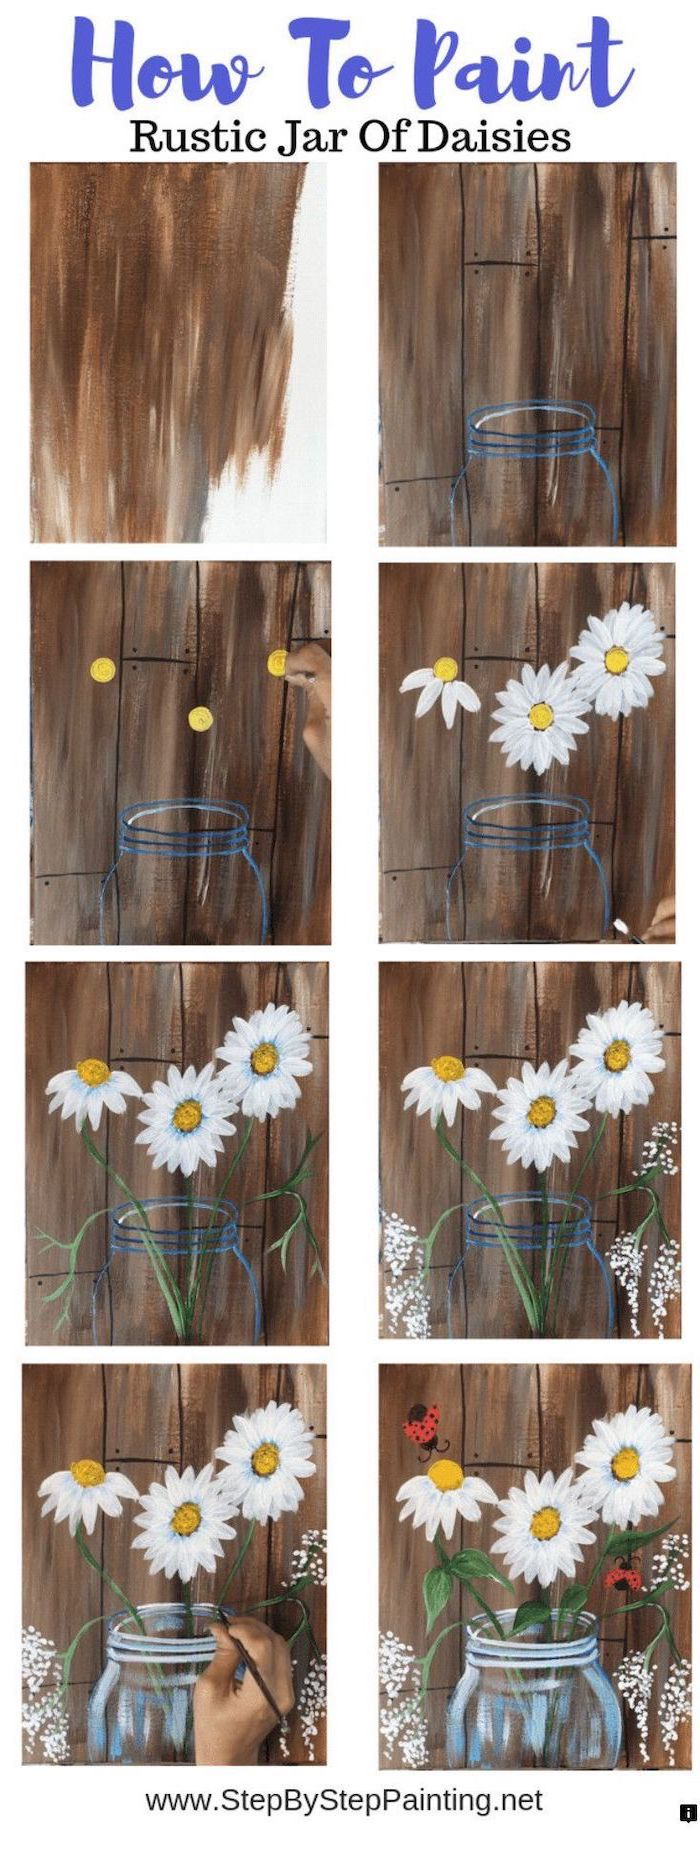 how to paint rustic jar of daisies, photo collage of step by step diy tutorial, cute things to paint